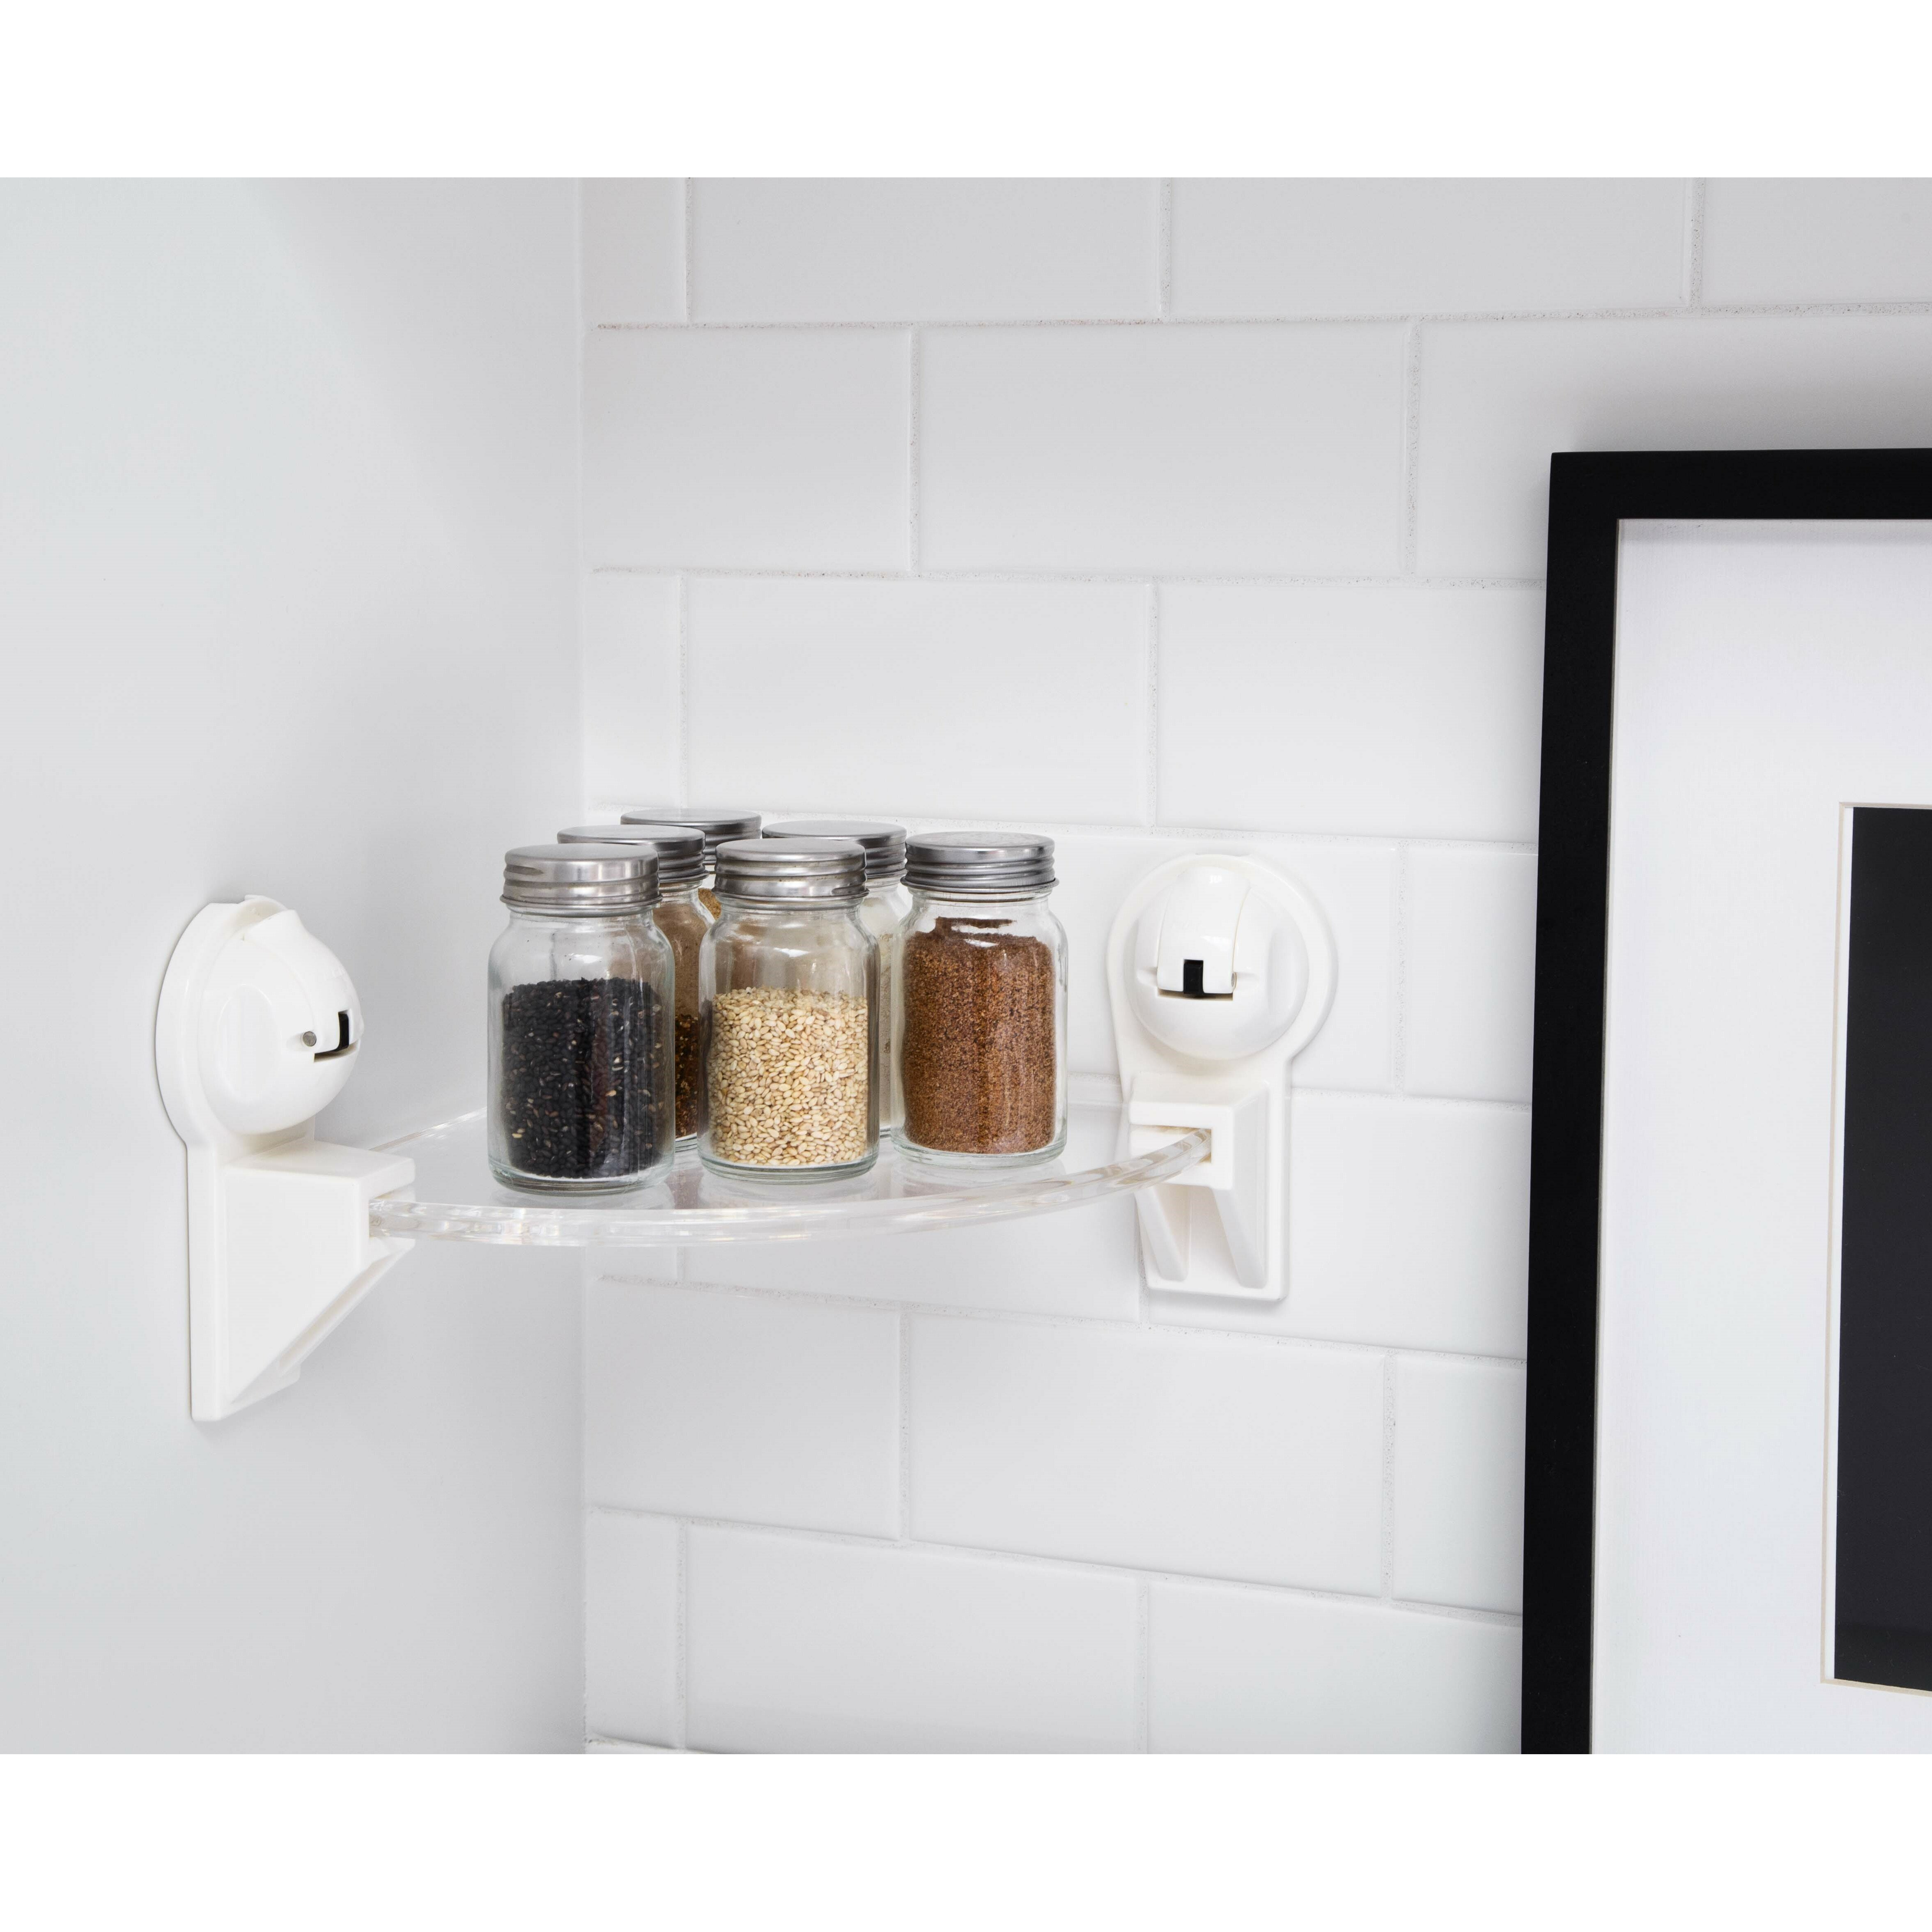 Suction Cup Bathroom Accessories Feca Triangular Corner With Powerful Suction Cup 1363 W Shelf